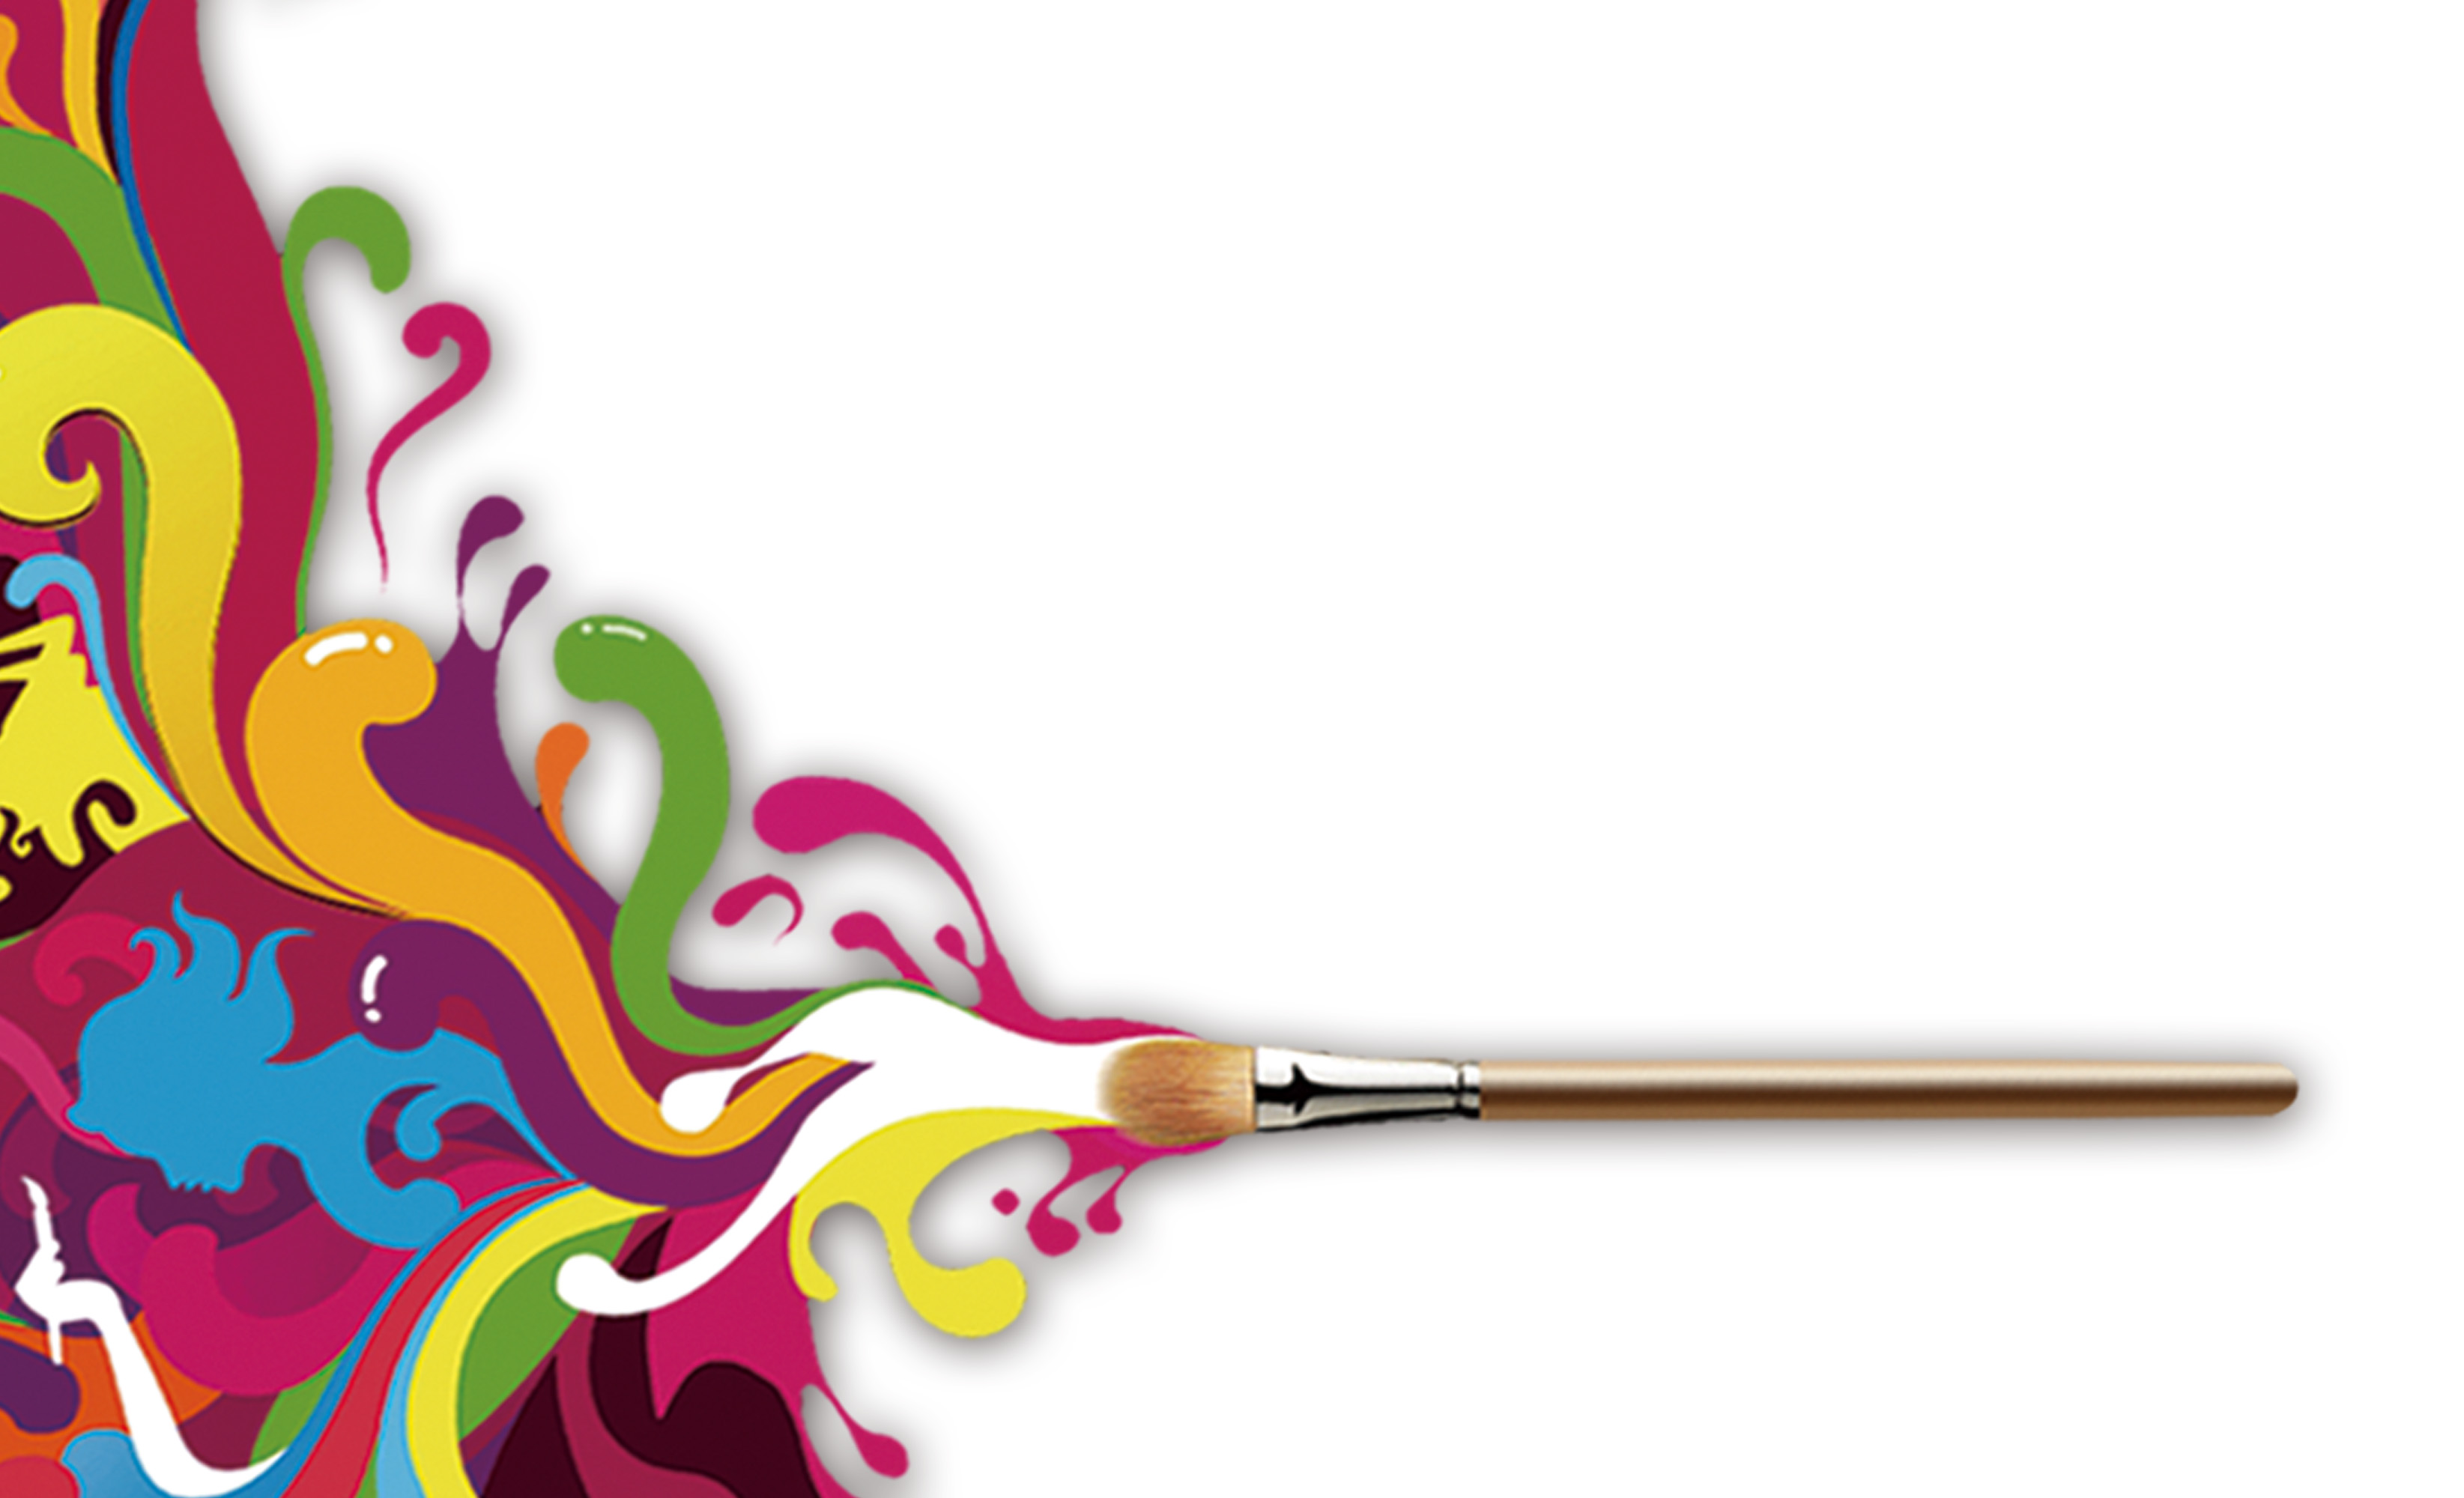 painting school business card background material